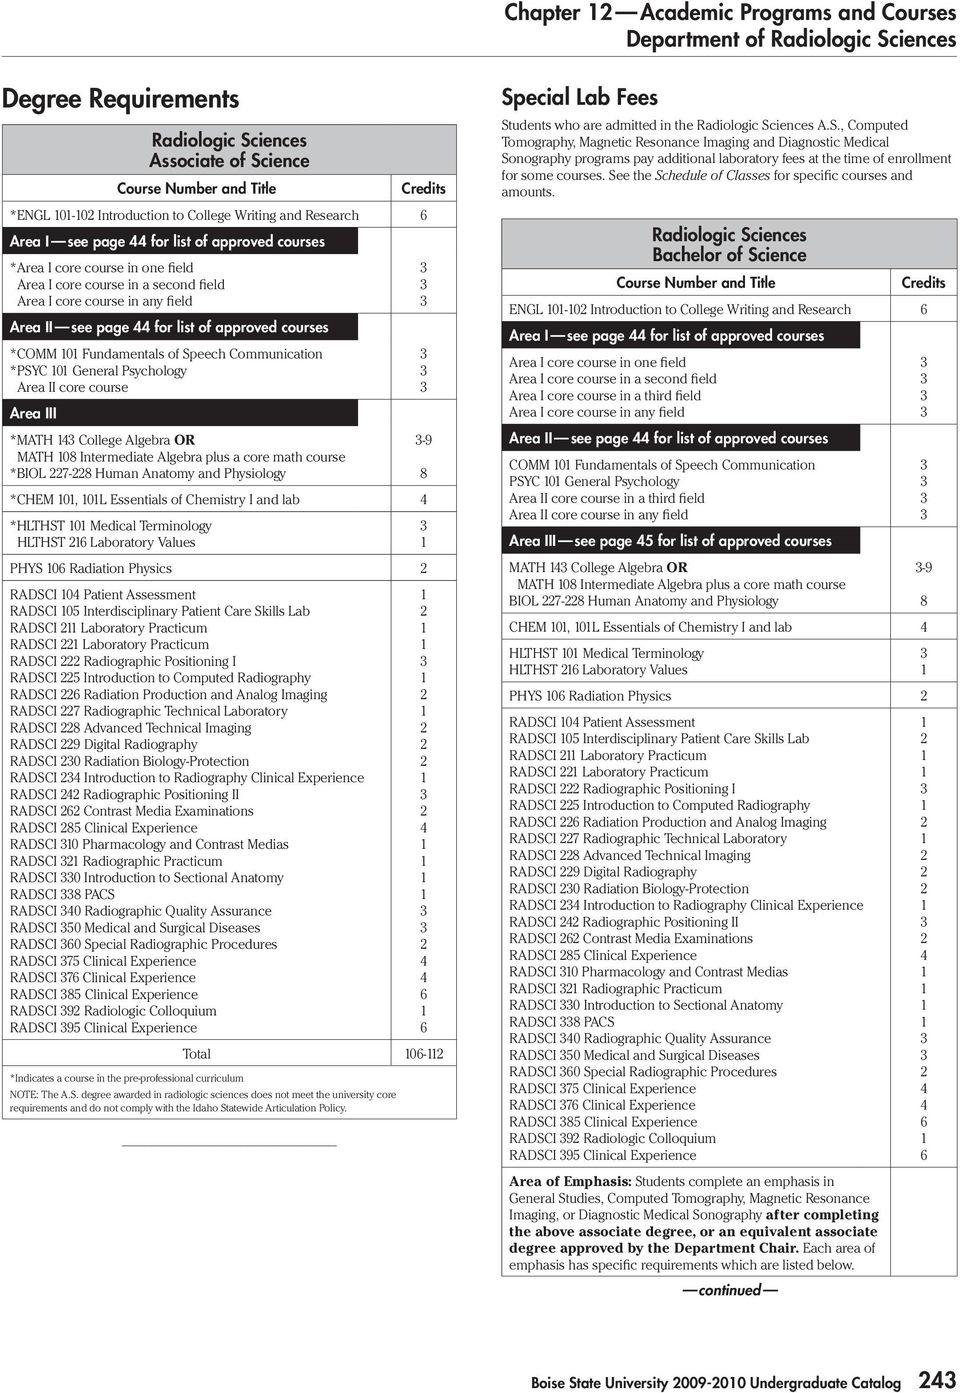 Medical Transcription arellano university college of law subjects syllabus curriculum